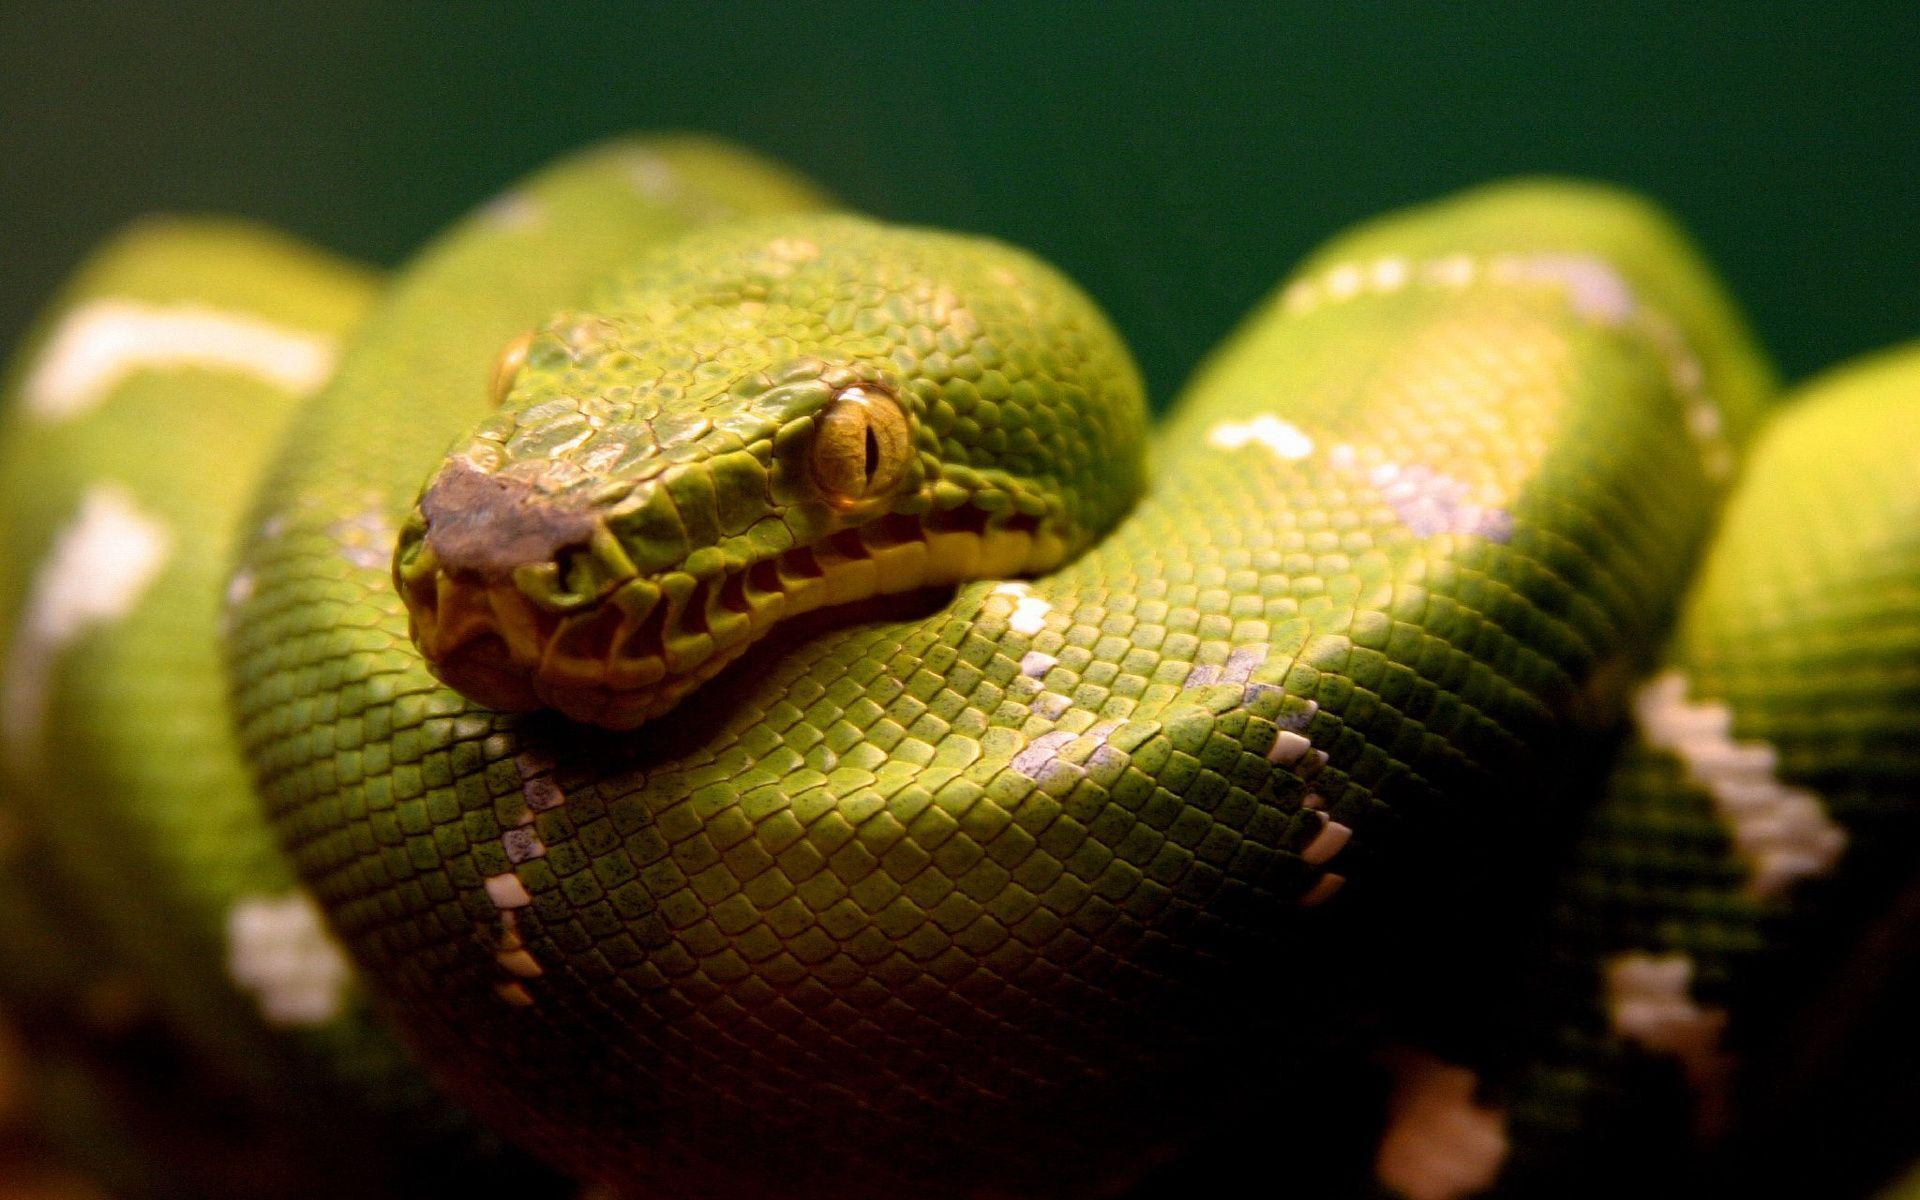 green snake Wallpaper - Animal Backgrounds